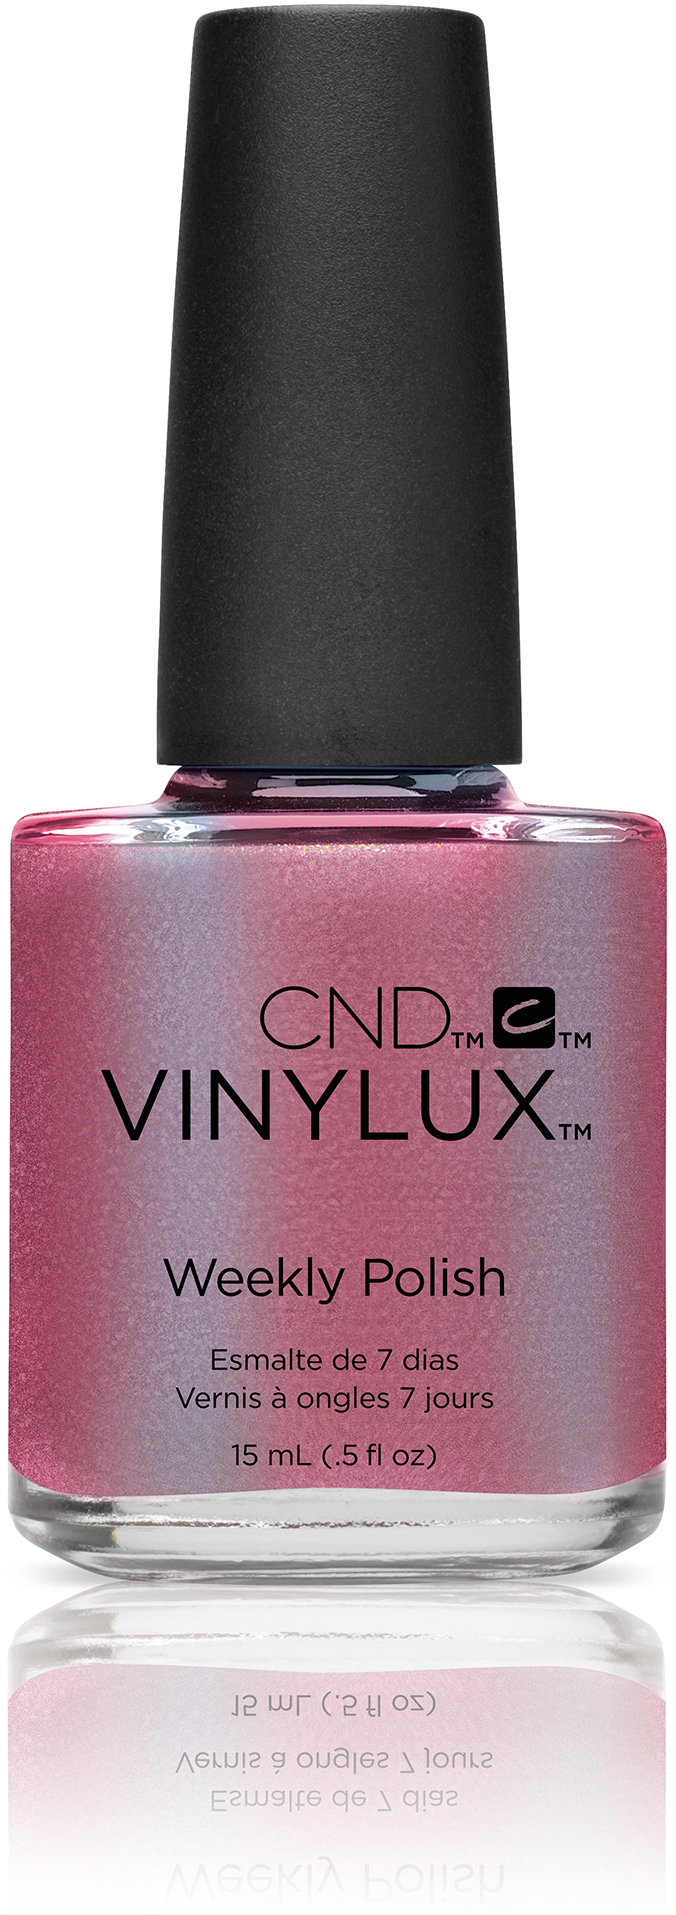 CND Vinylux Craft Culture Collection Patina Buckle